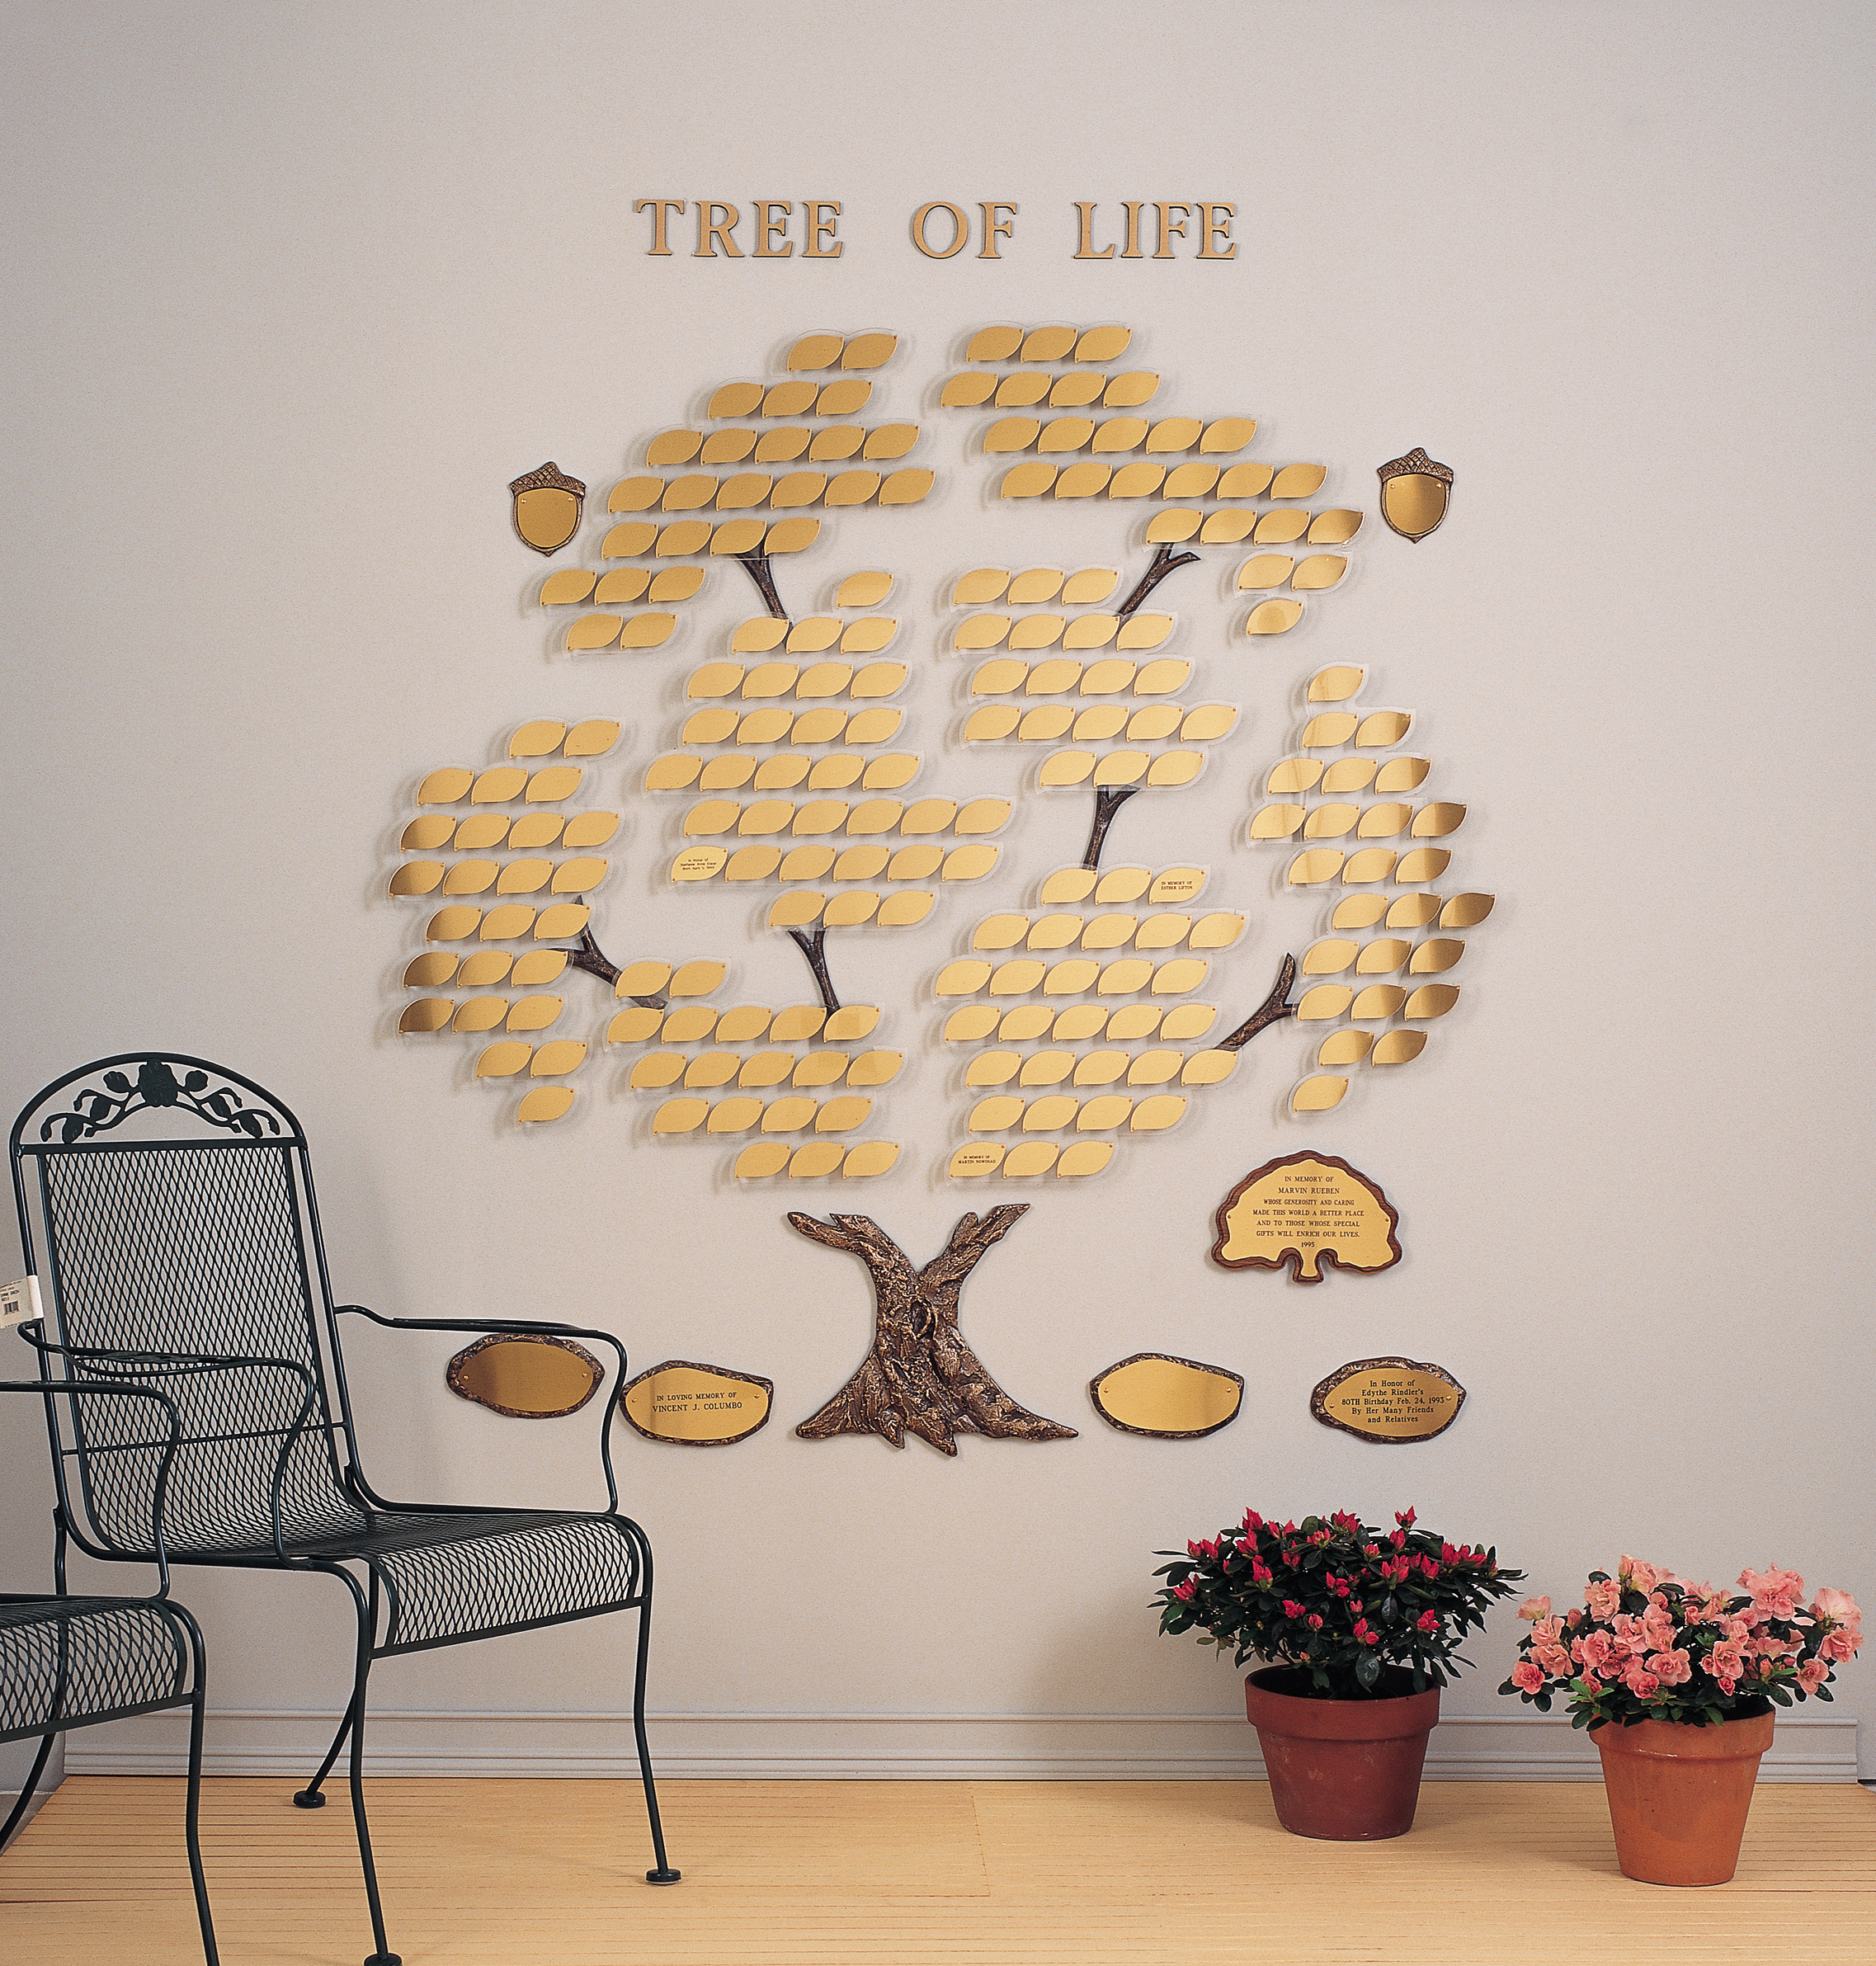 Trees of Life - Growing Tree 200